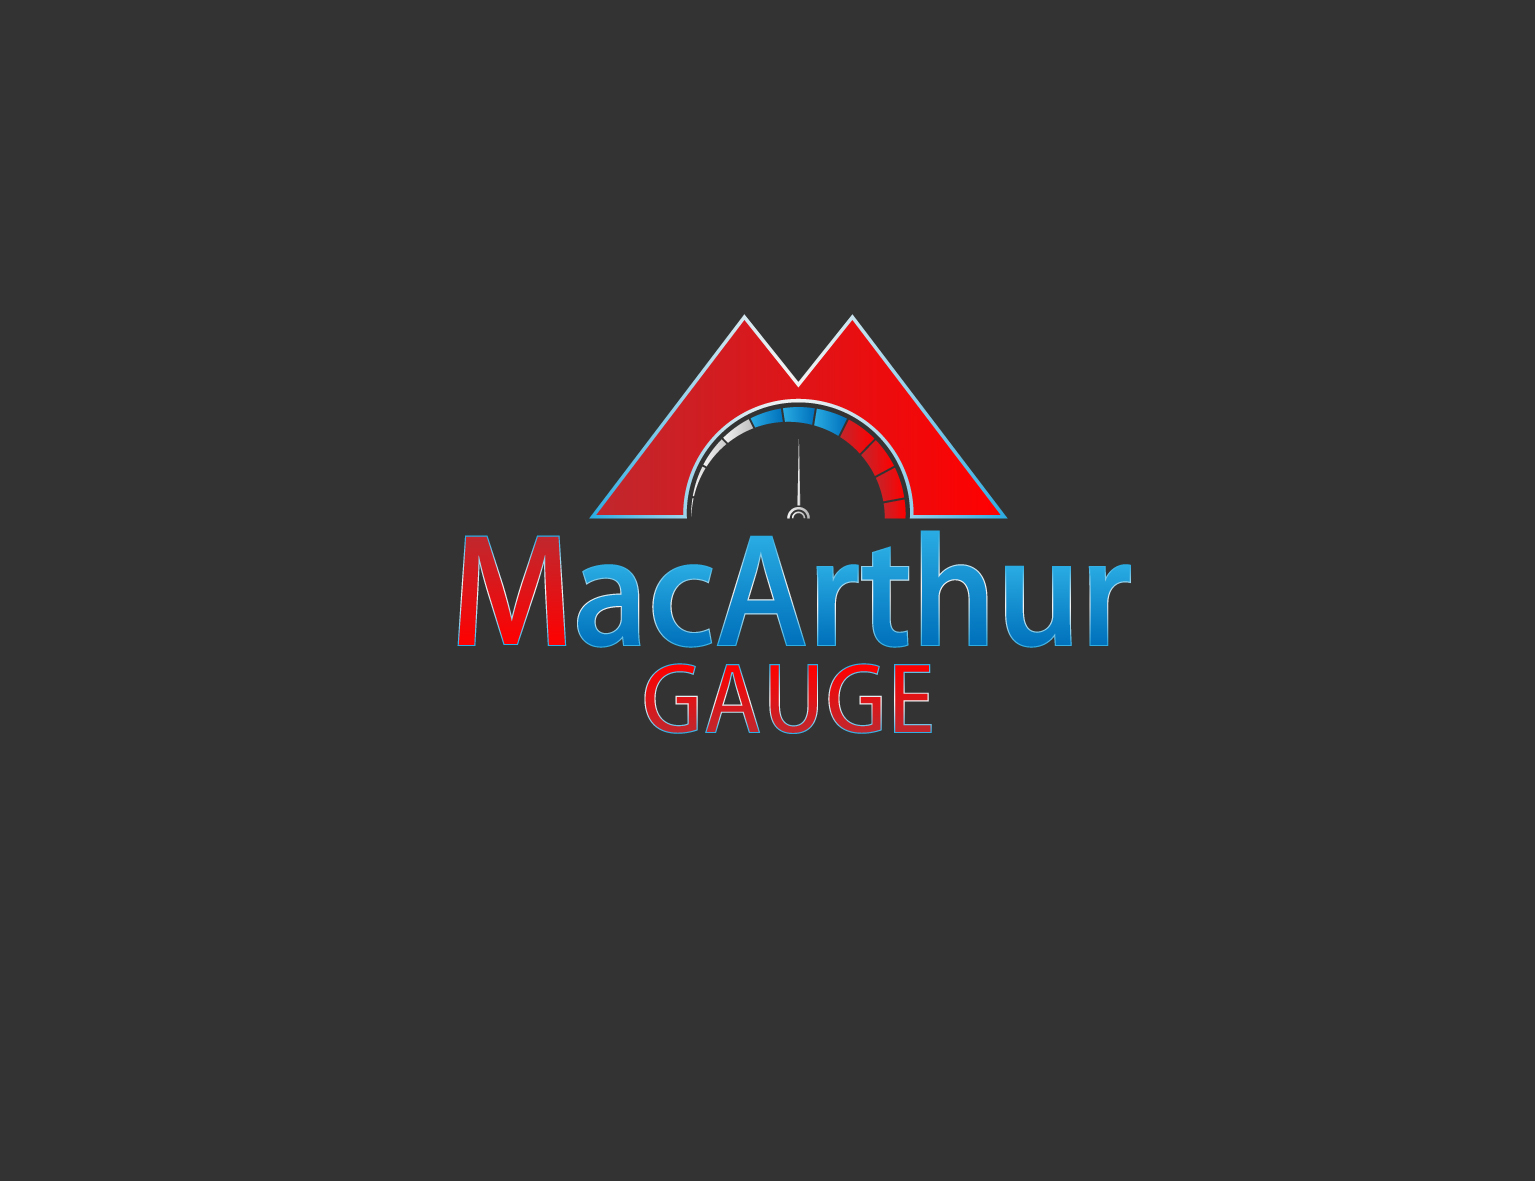 Logo Design by 3draw - Entry No. 234 in the Logo Design Contest Fun Logo Design for MacArthur Gauge.